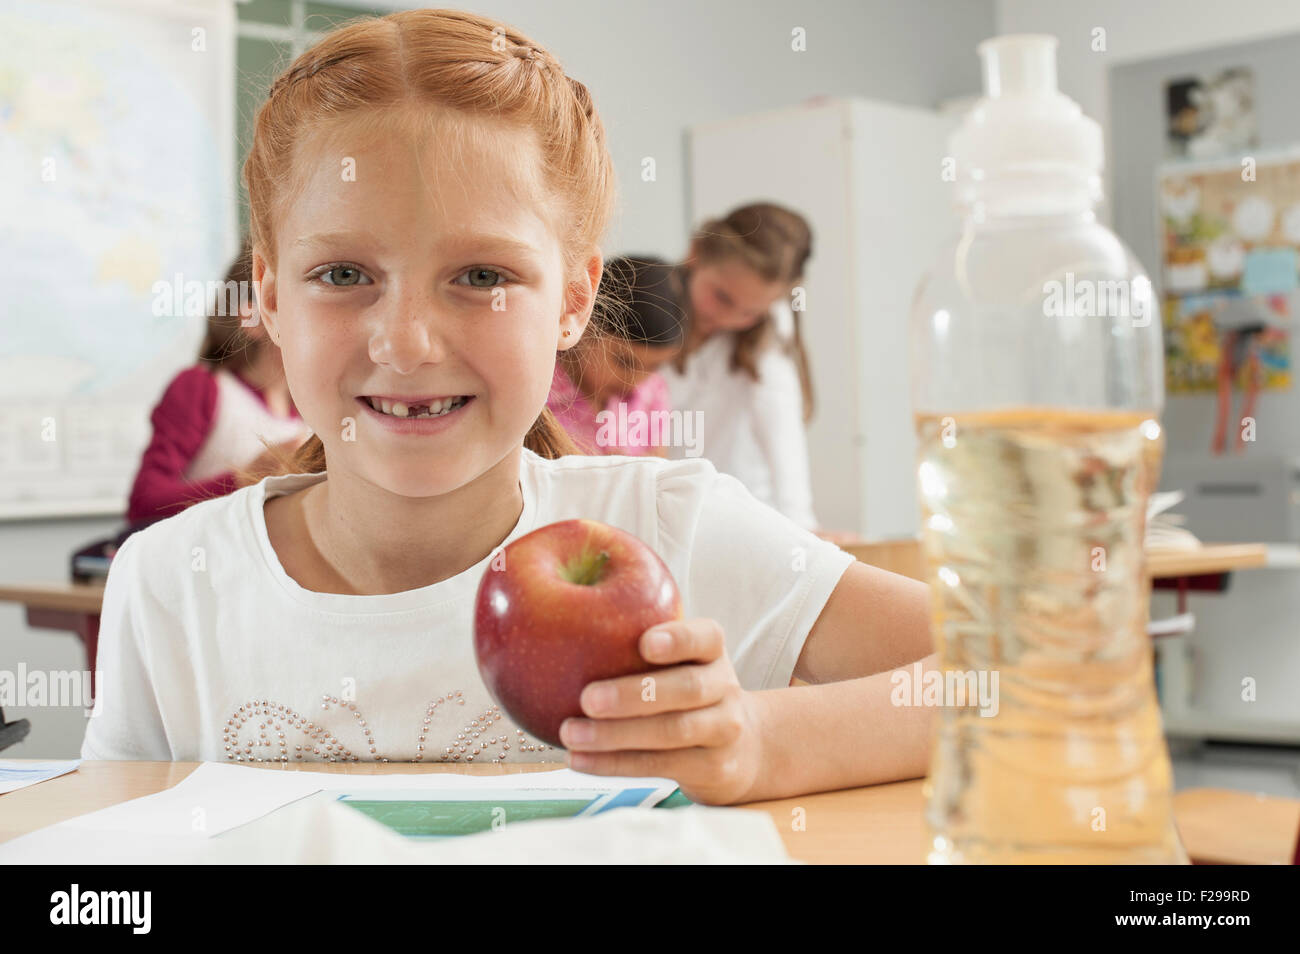 Portrait of a schoolgirl holding an apple in classroom, Munich, Bavaria, Germany - Stock Image